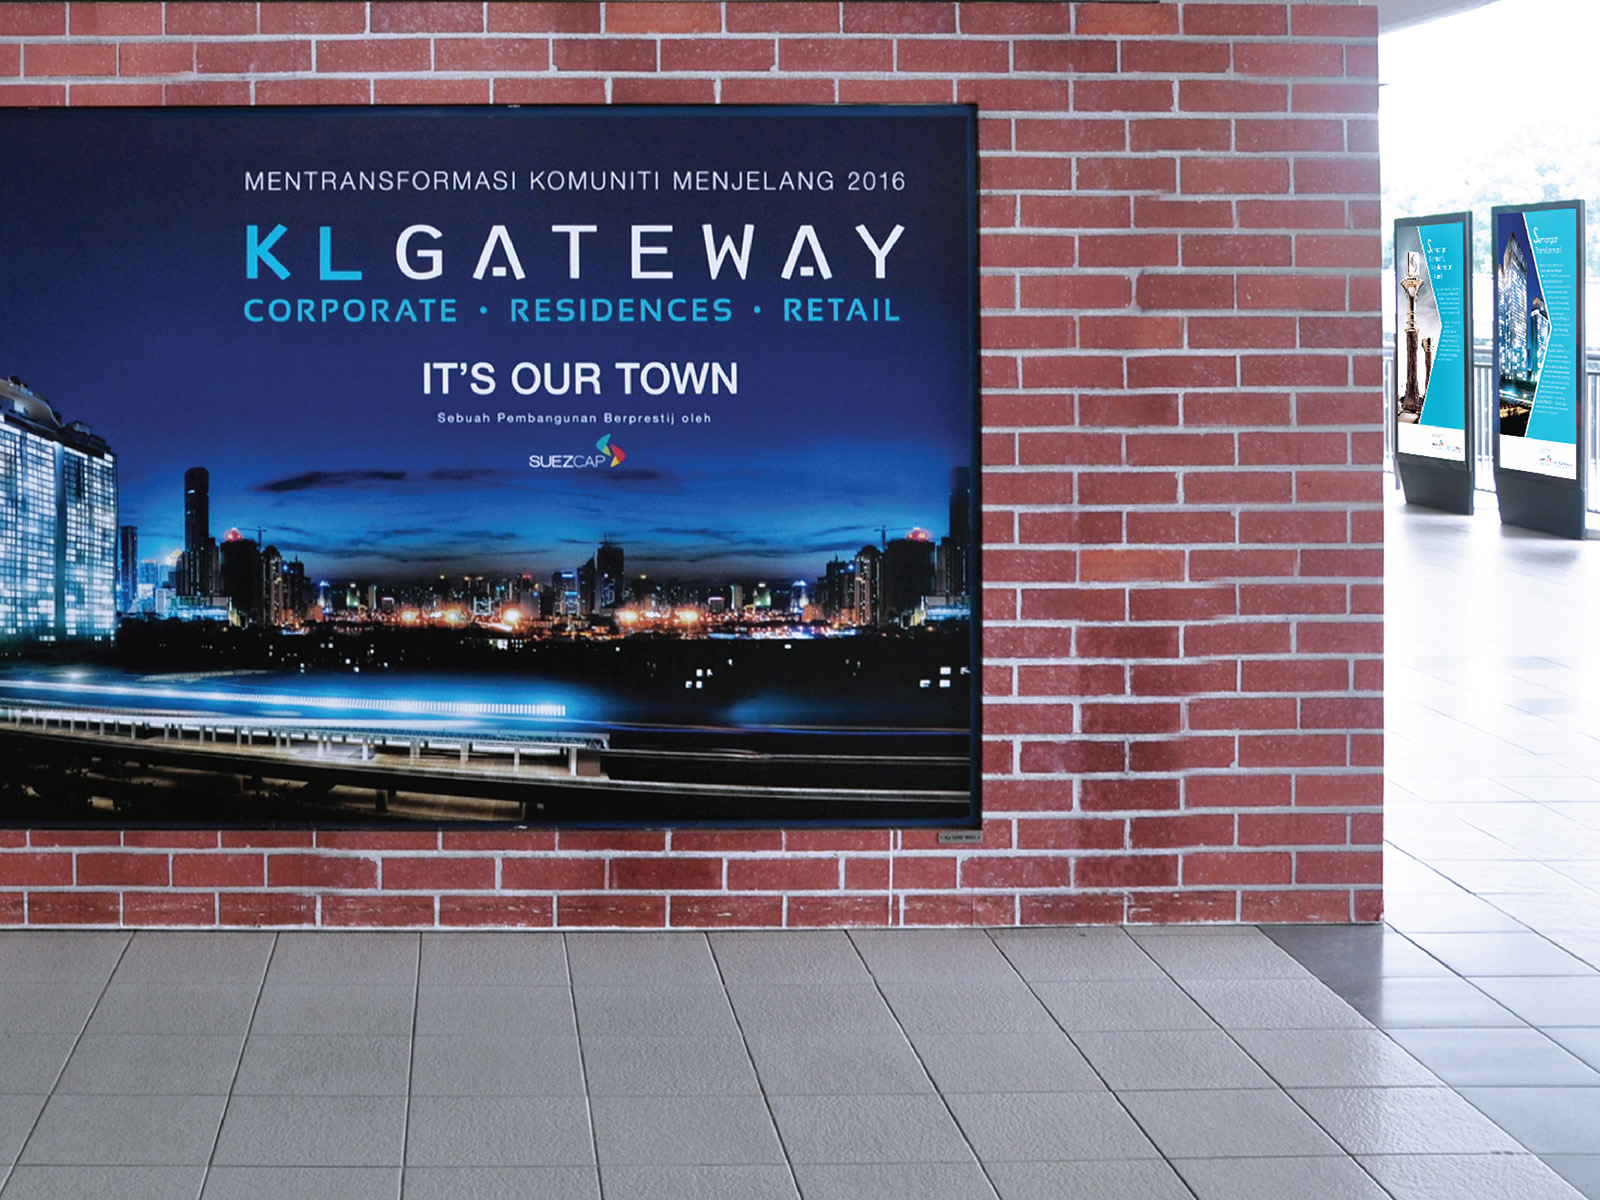 KL Gateway brand advertisement design in the train station display board showing new development facade at night with tagline